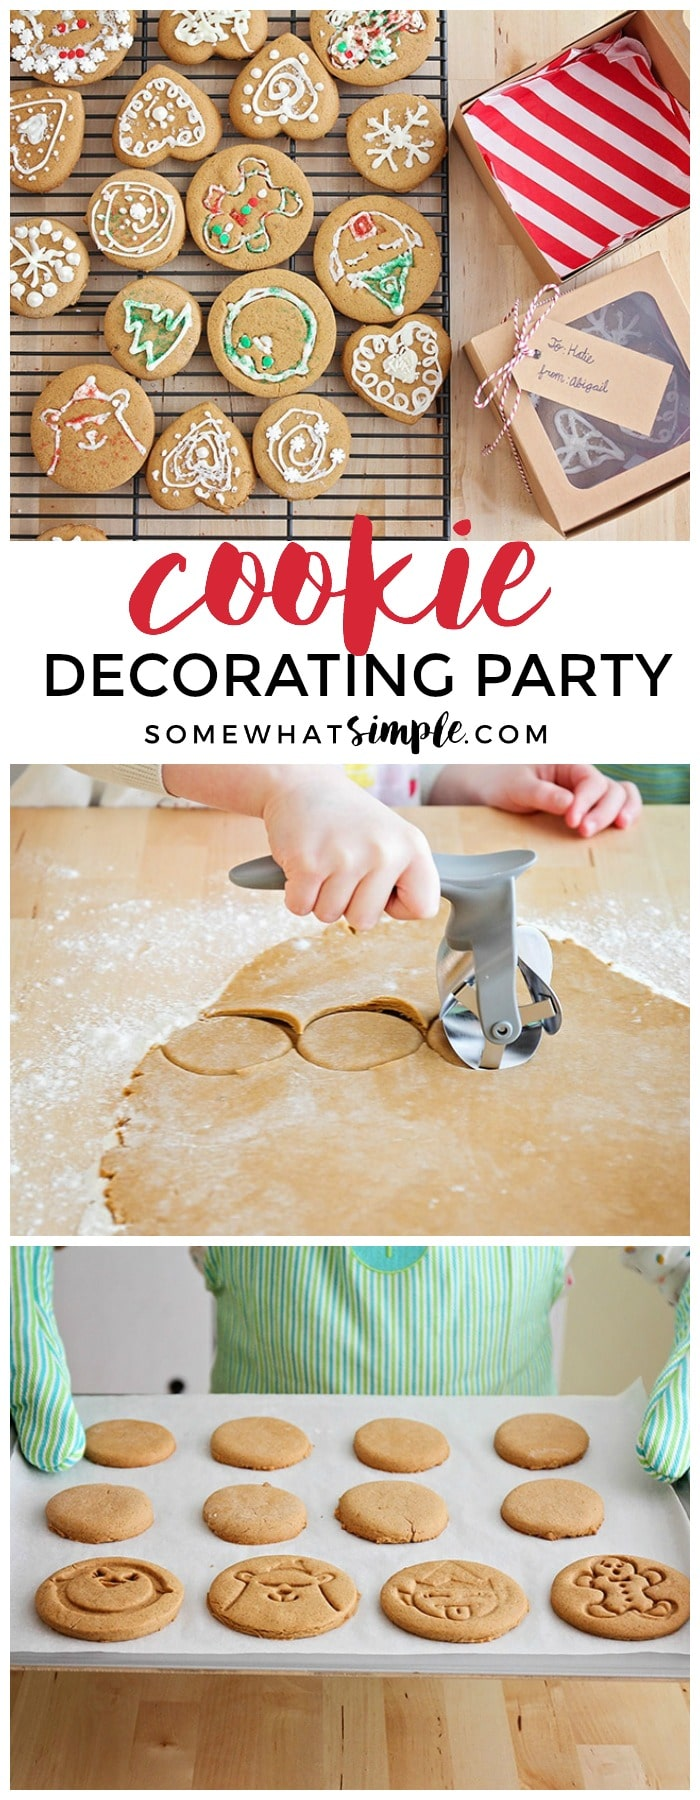 Grab the kids and get ready for a special cookie decorating party! Making cookies together has never been so fun (and easy!)#cookies #christmas #party #decorating #kids #holiday #gingerbread via @somewhatsimple